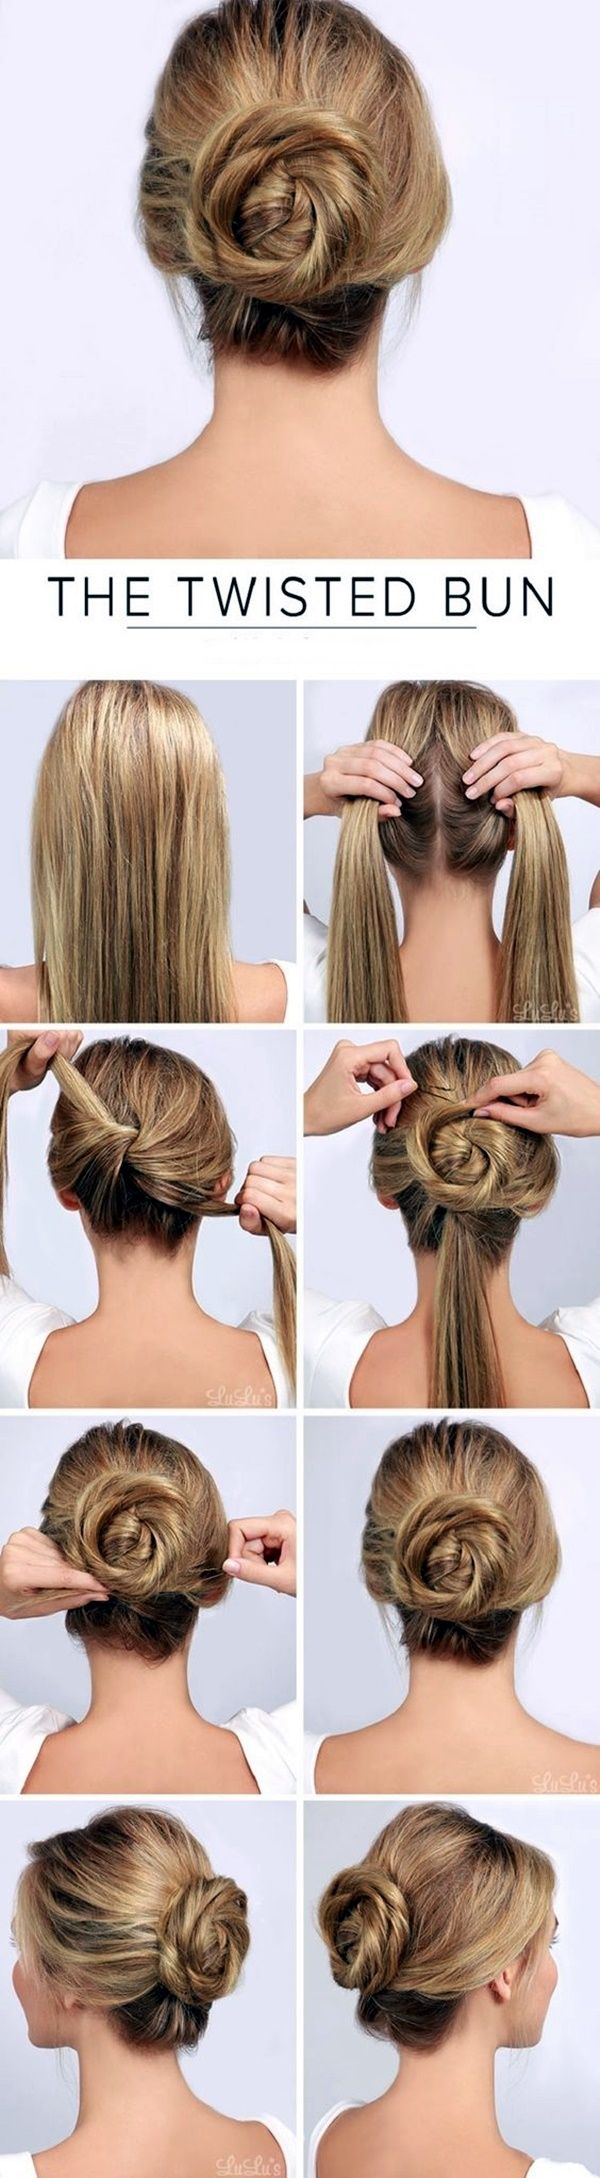 Easy To Do Hairstyles Glamorous 55 Best Easy Hairstyles Images On Pinterest  Hairstyle Ideas Cute